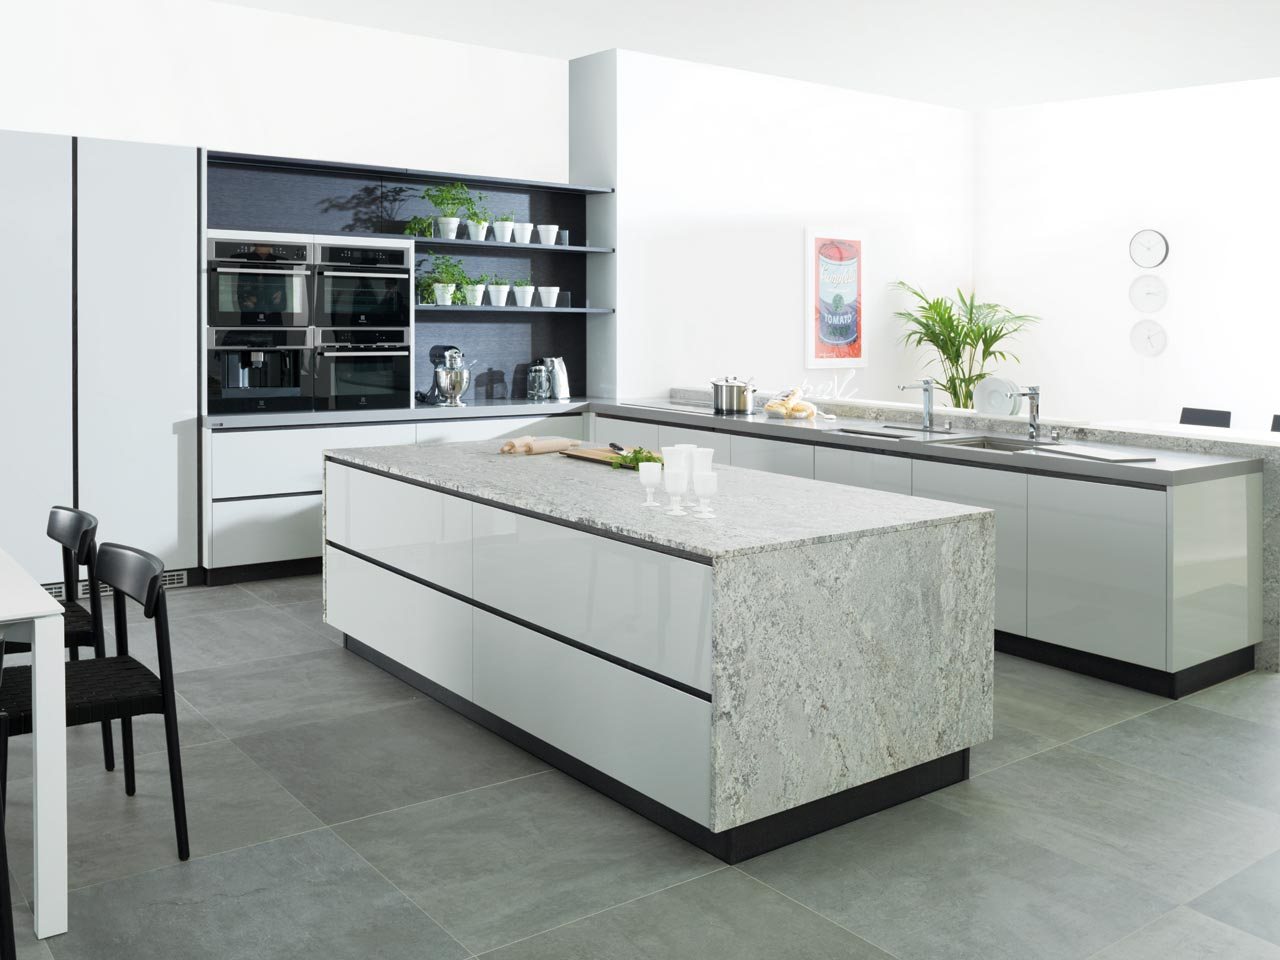 Cocina estilo contemporaneo color blanco gris negro for Color credence cocina blanca